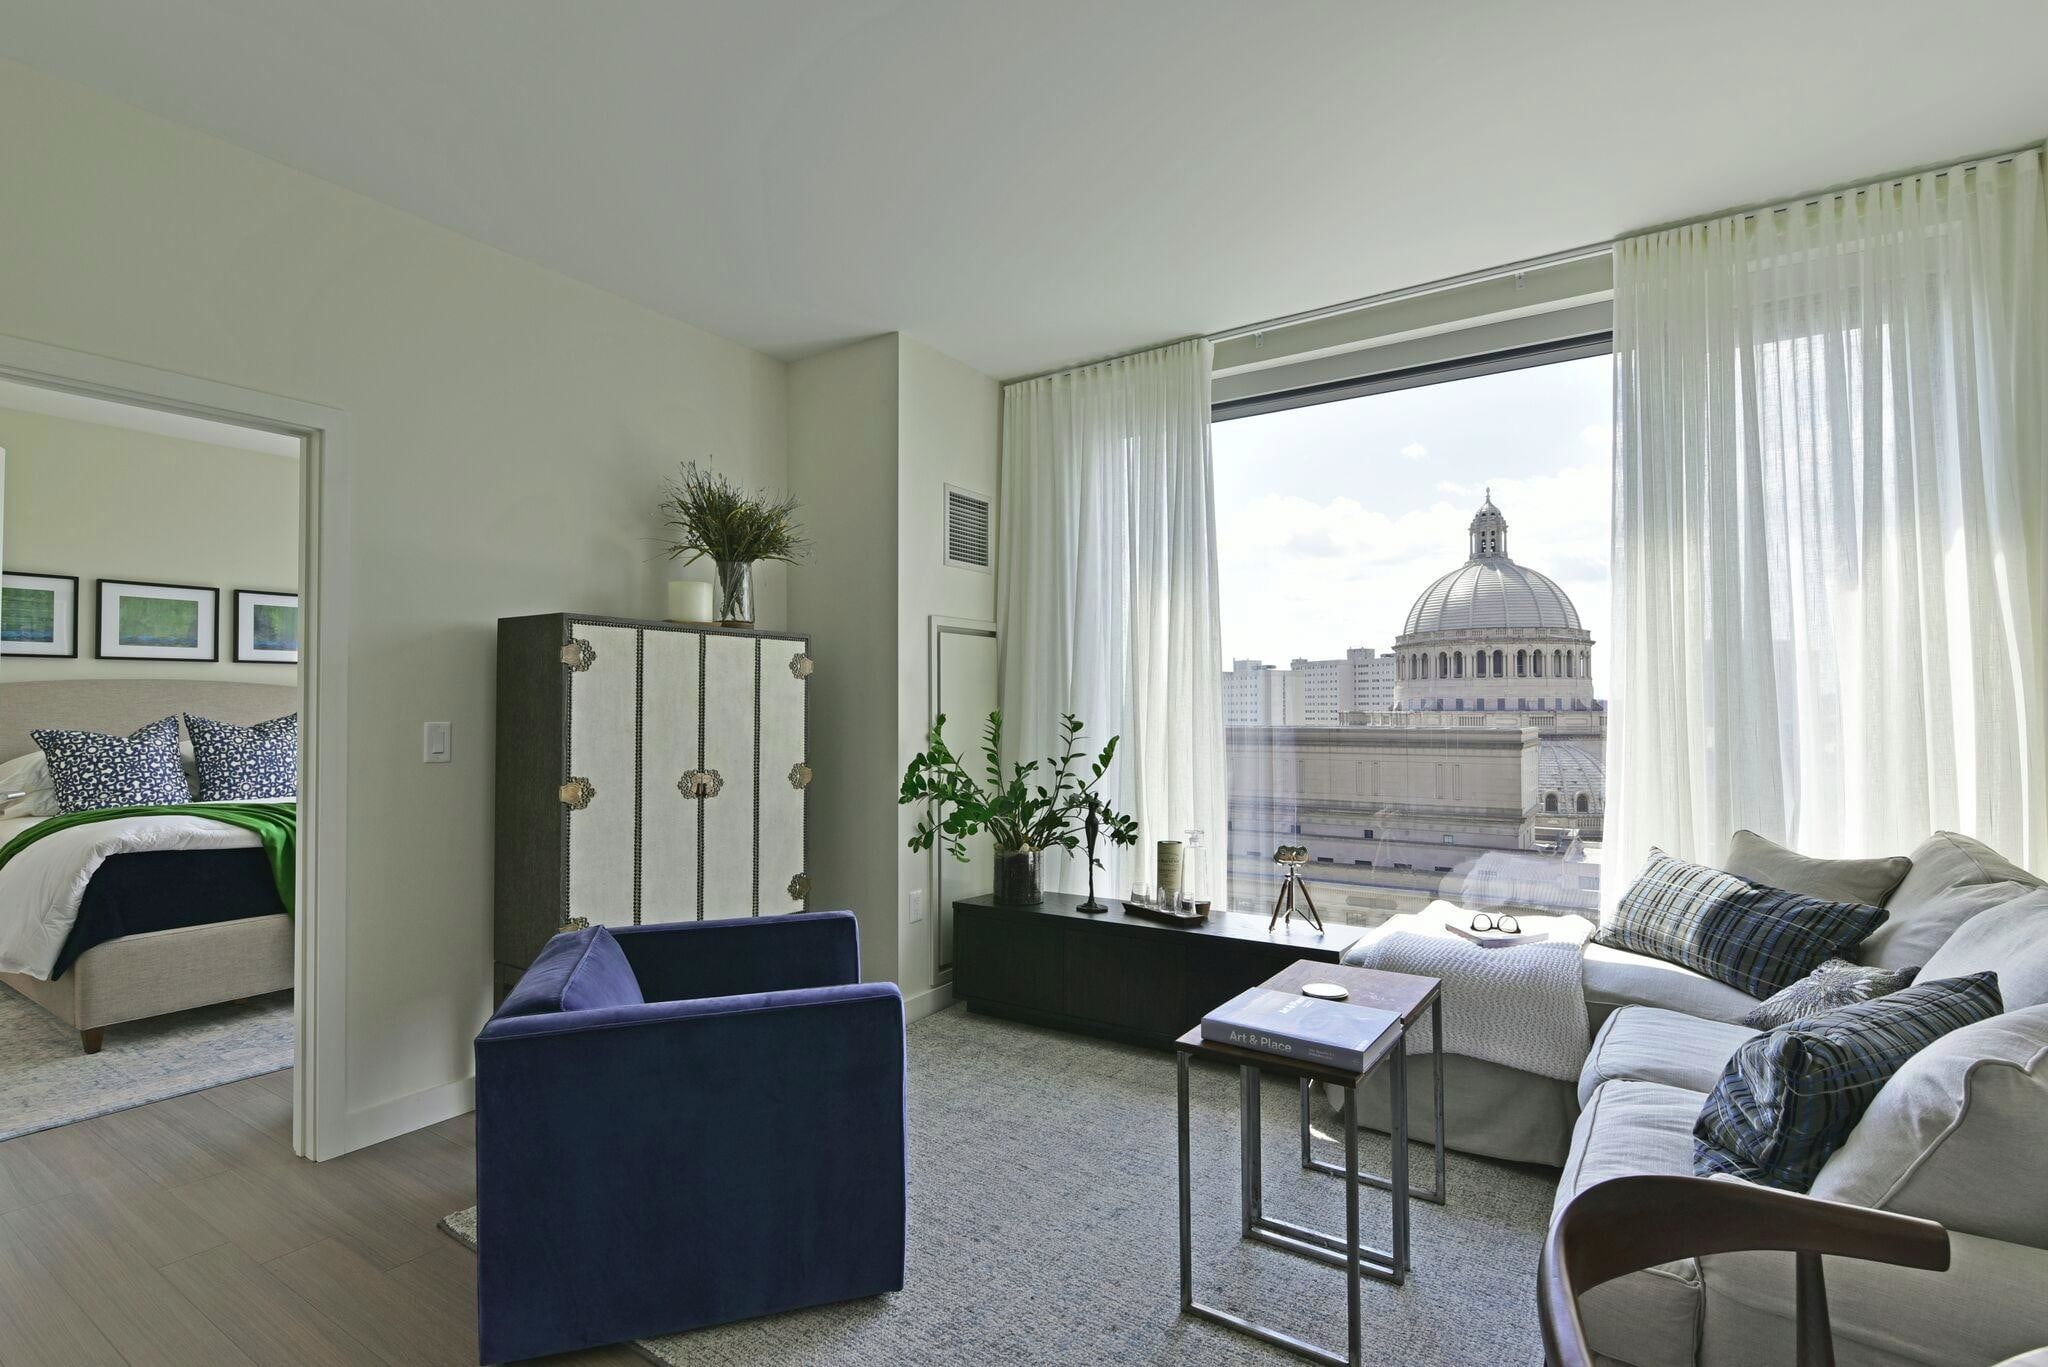 20 Bedroom Apartments In Boston Ma For You Apartment Room One Bedroom Apartment Renting A House